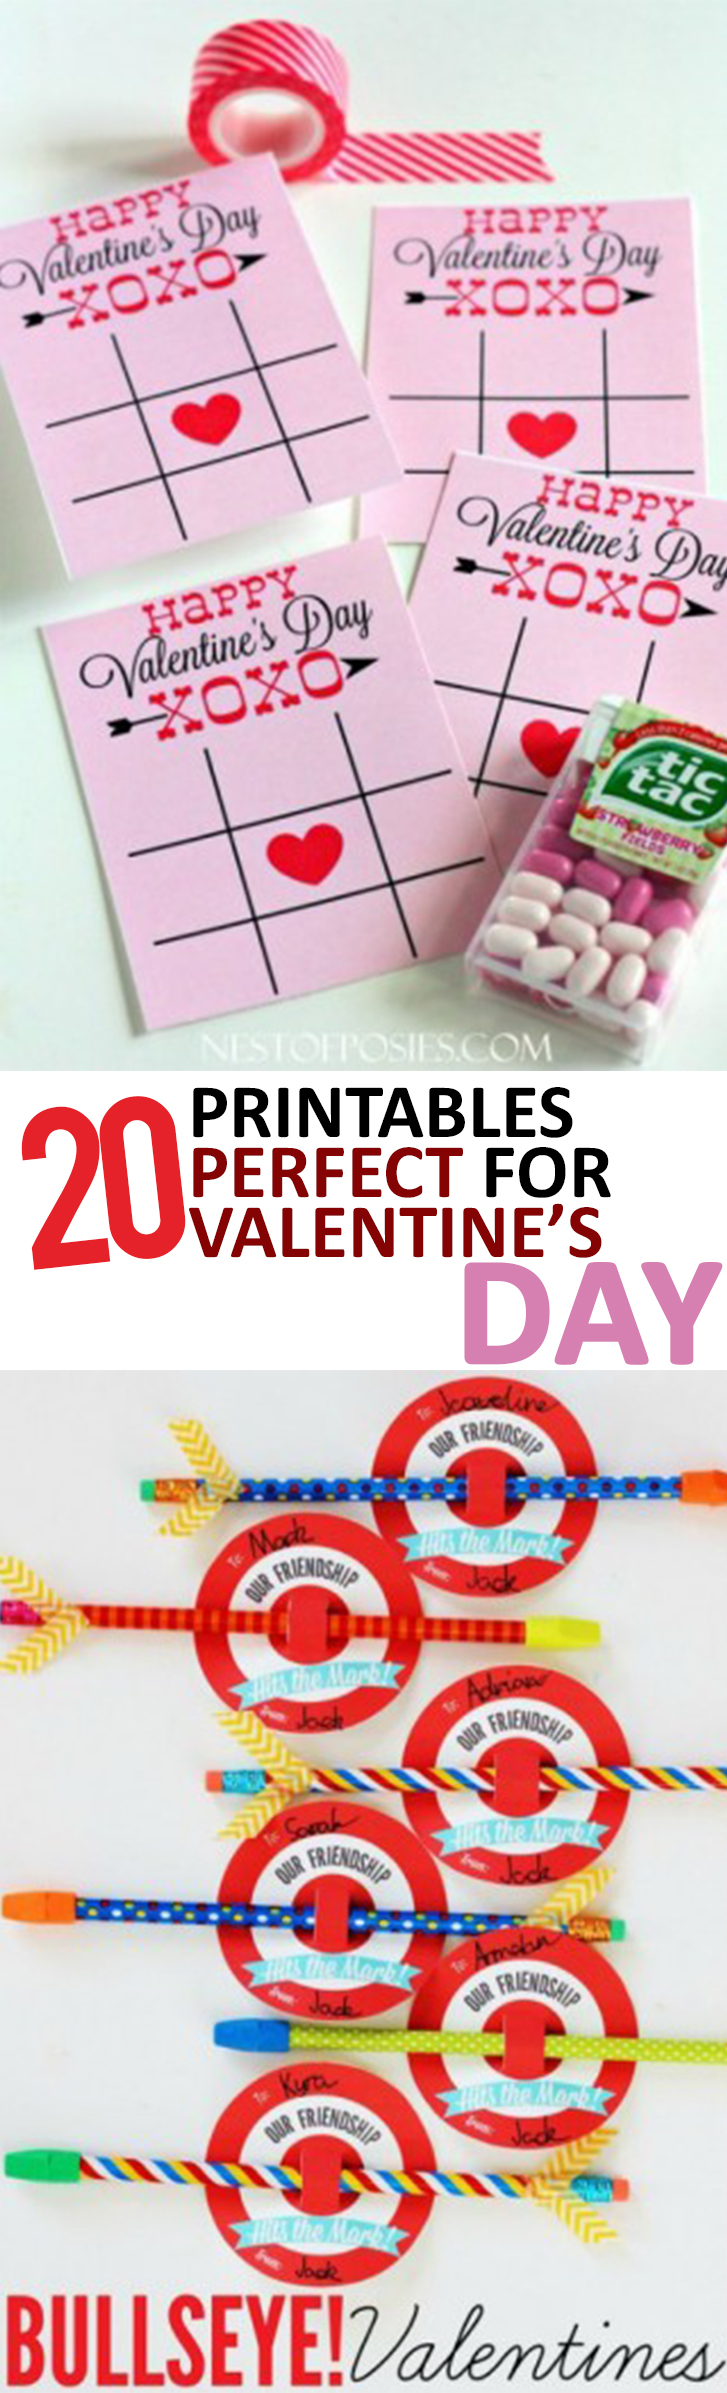 20-printables-perfect-for-valentines-day